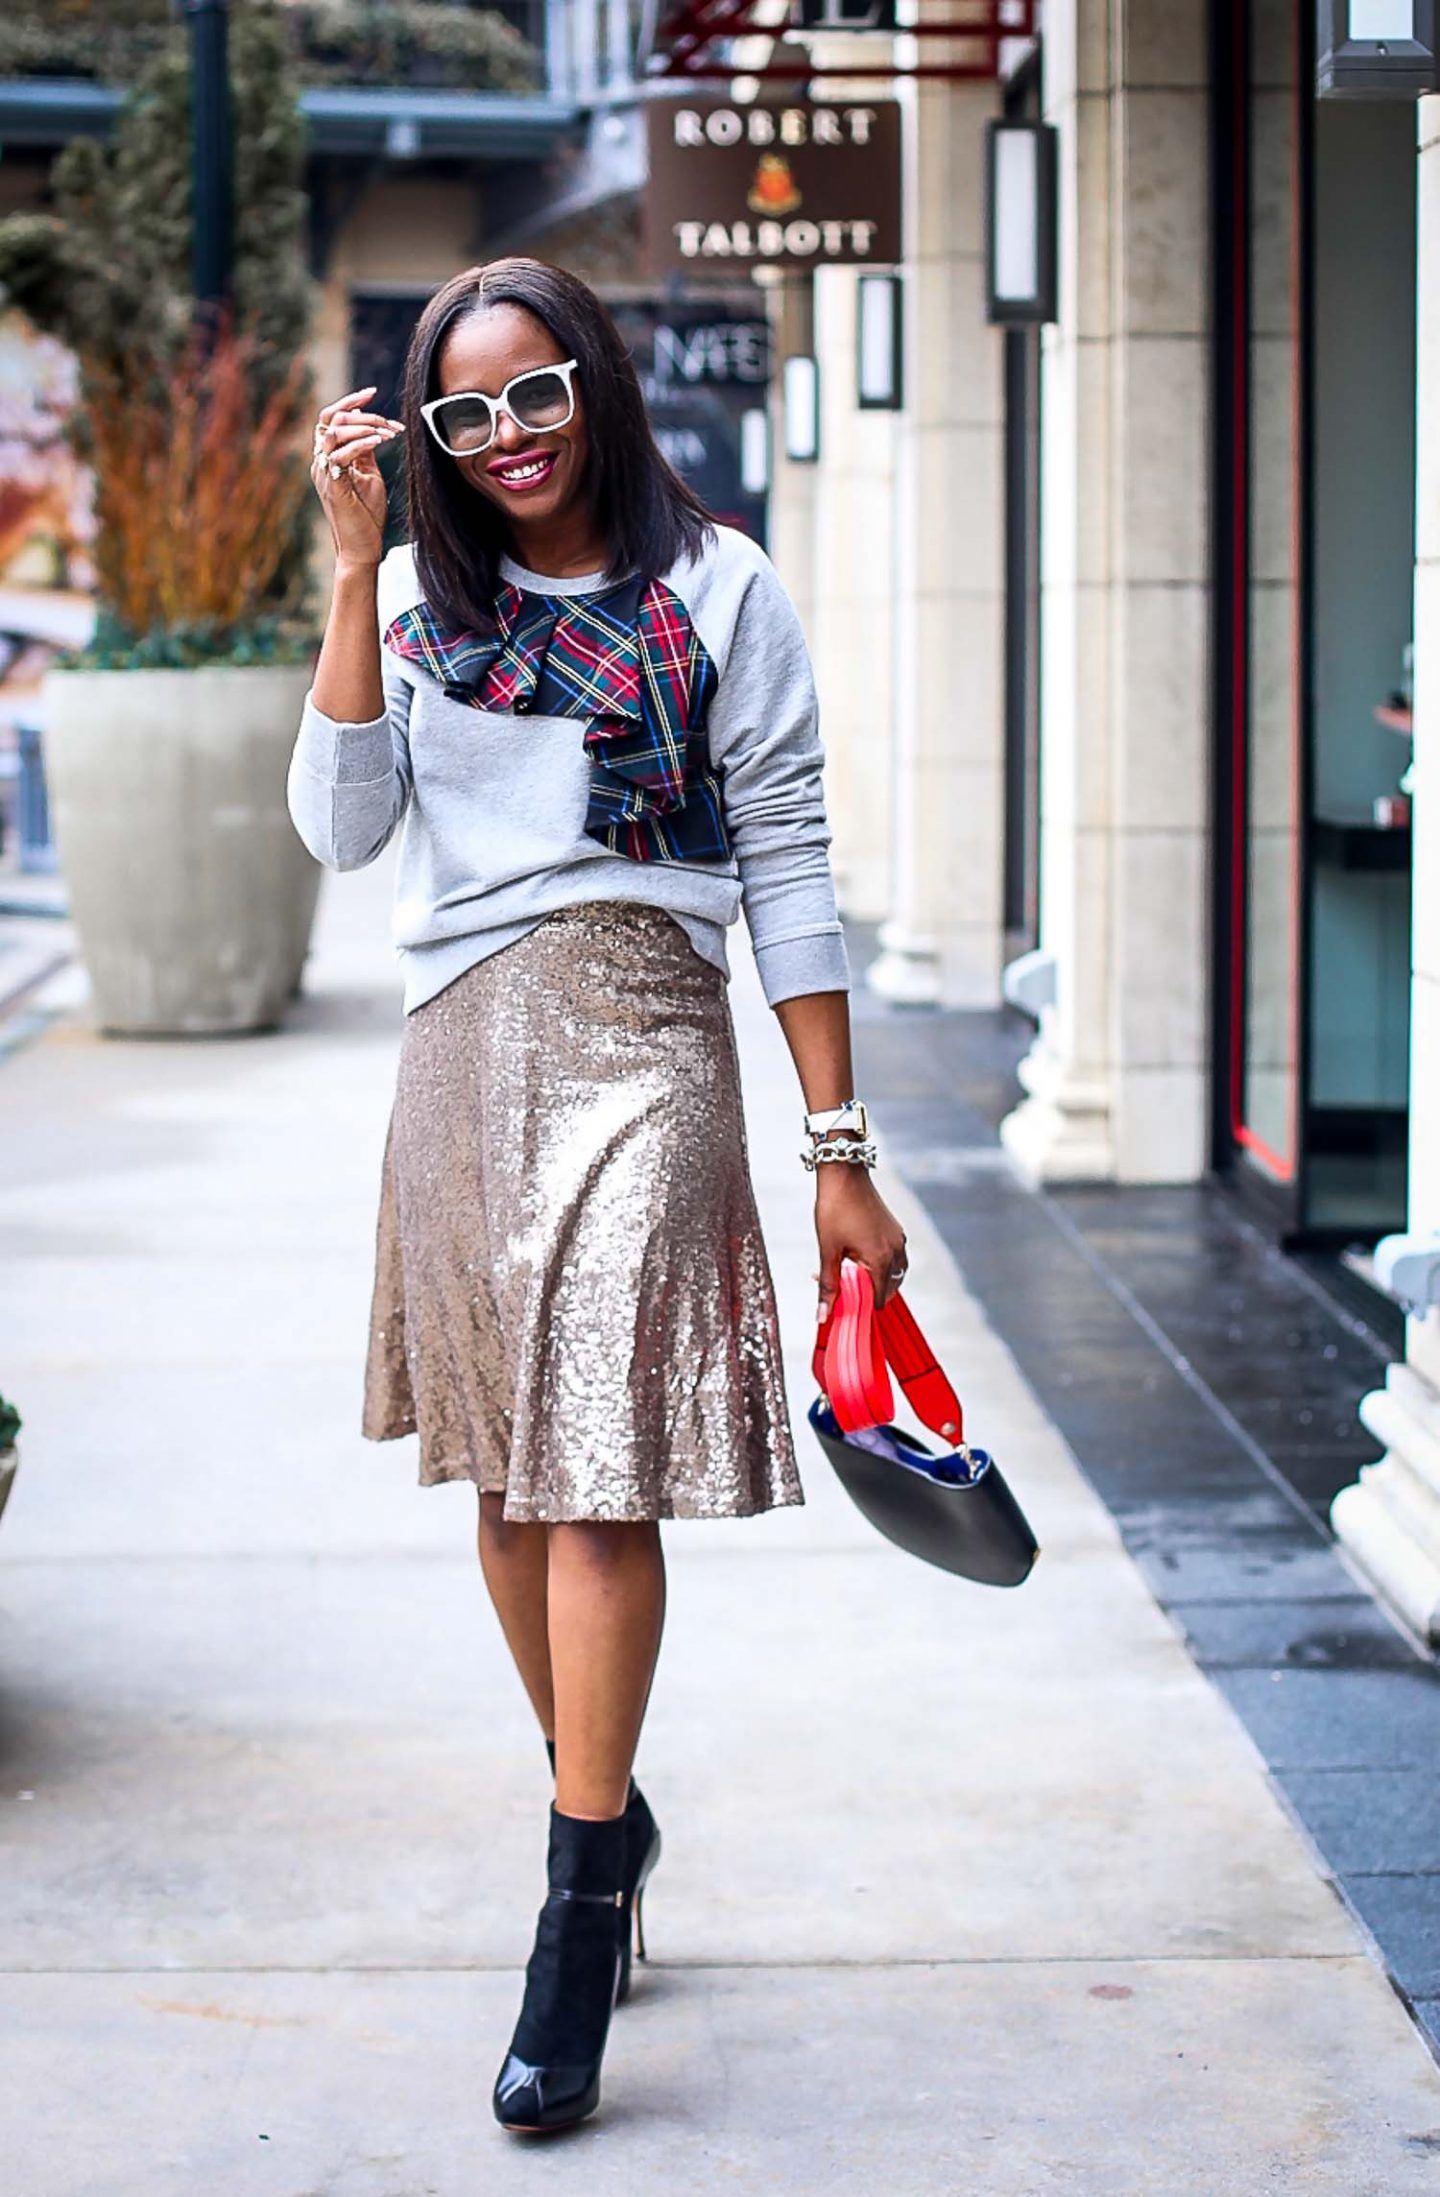 How to sequin wear skirt in winter rare photo